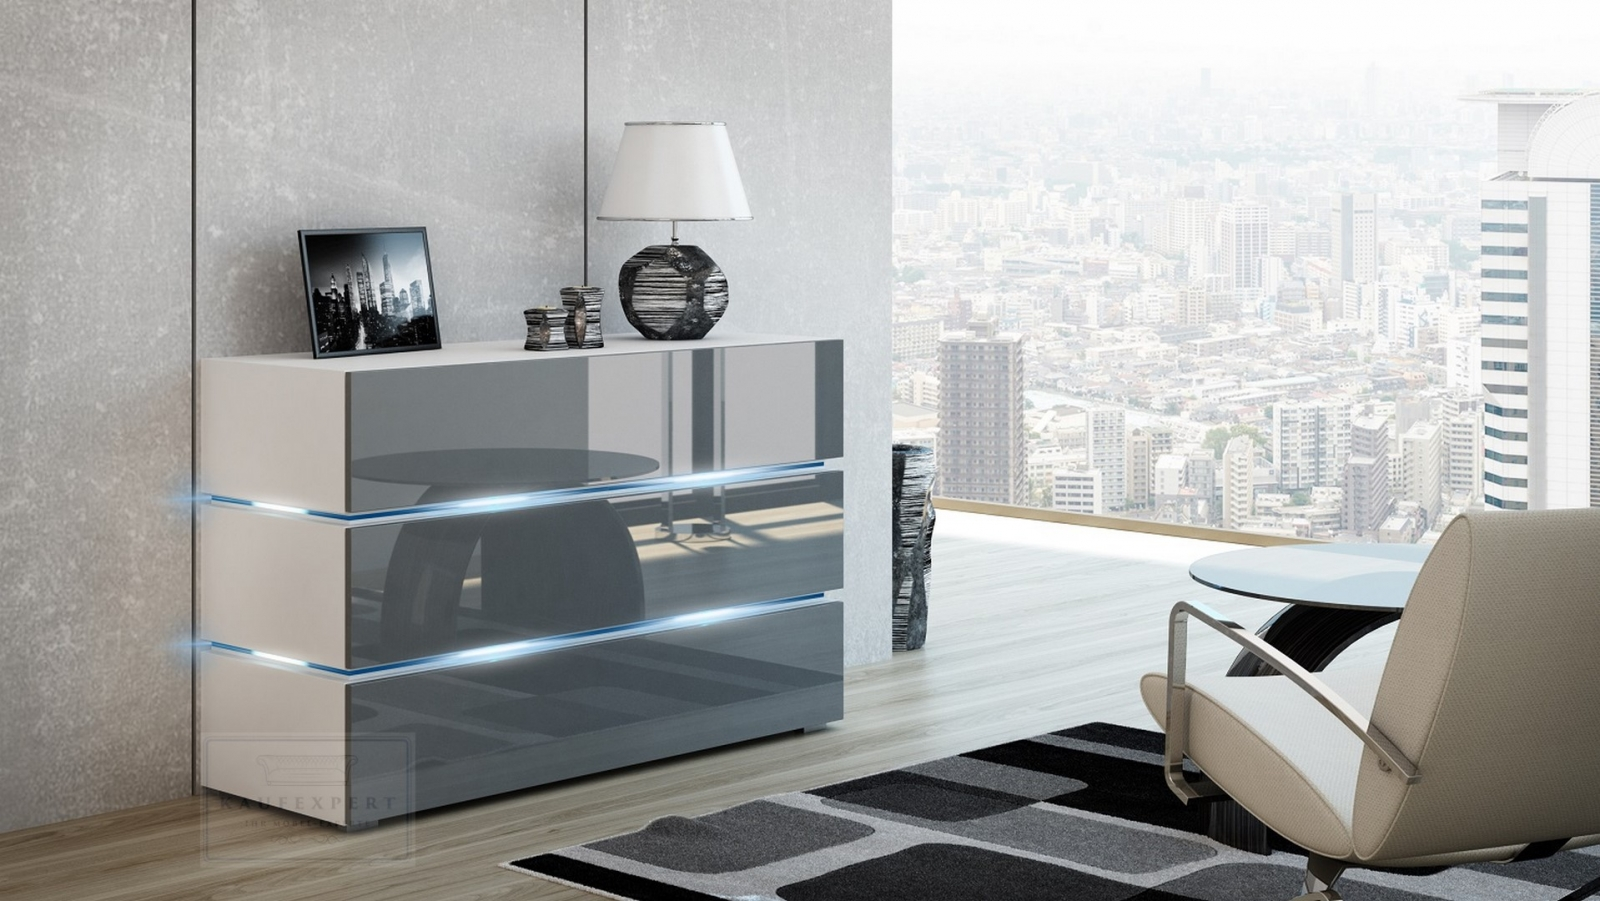 kaufexpert kommode shine sideboard 120 cm grau hochglanz wei led beleuchtung modern design tv. Black Bedroom Furniture Sets. Home Design Ideas